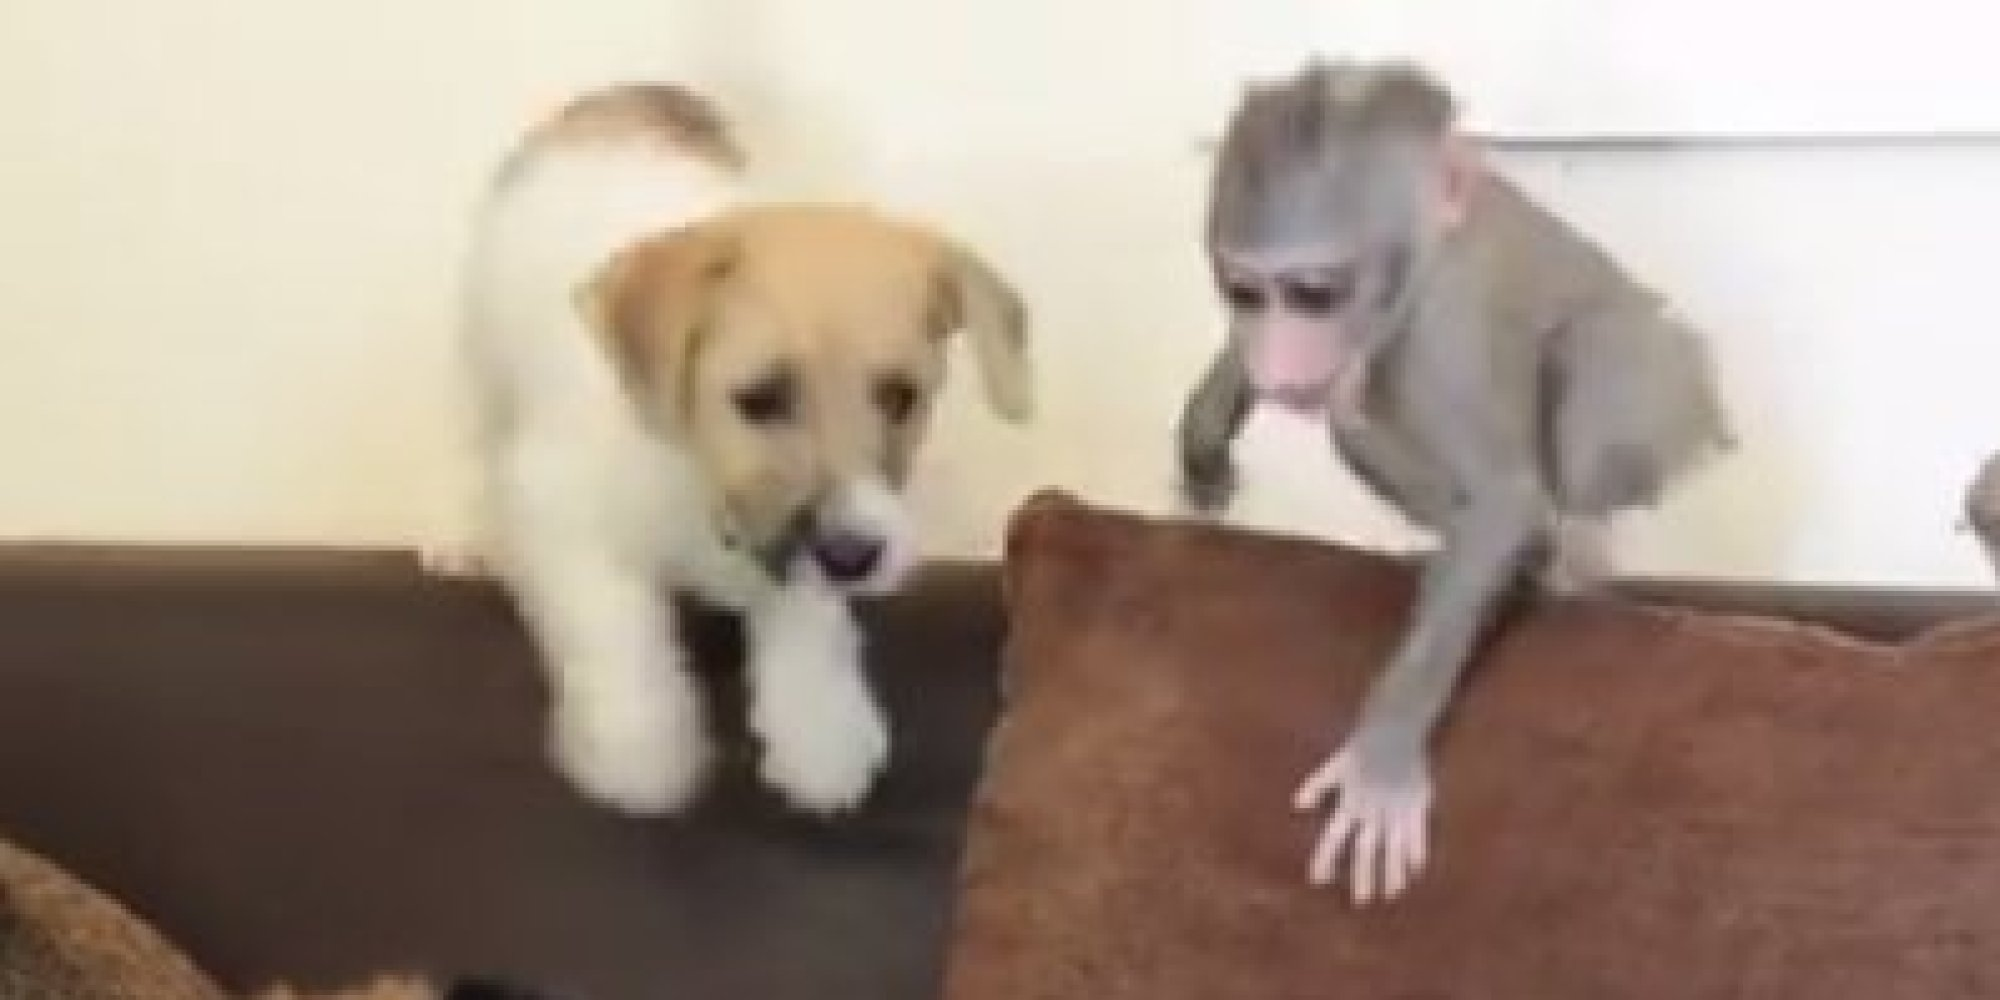 Invigorating Twopuppies Huffpost After Being Rejected By Her A Baby Monkey Makes Friends Monkey Baby Puppy Gif Monkey Puppy Baby Doll After Being Rejected By Her A Baby Monkey Makes Friends bark post Monkey Baby Puppy